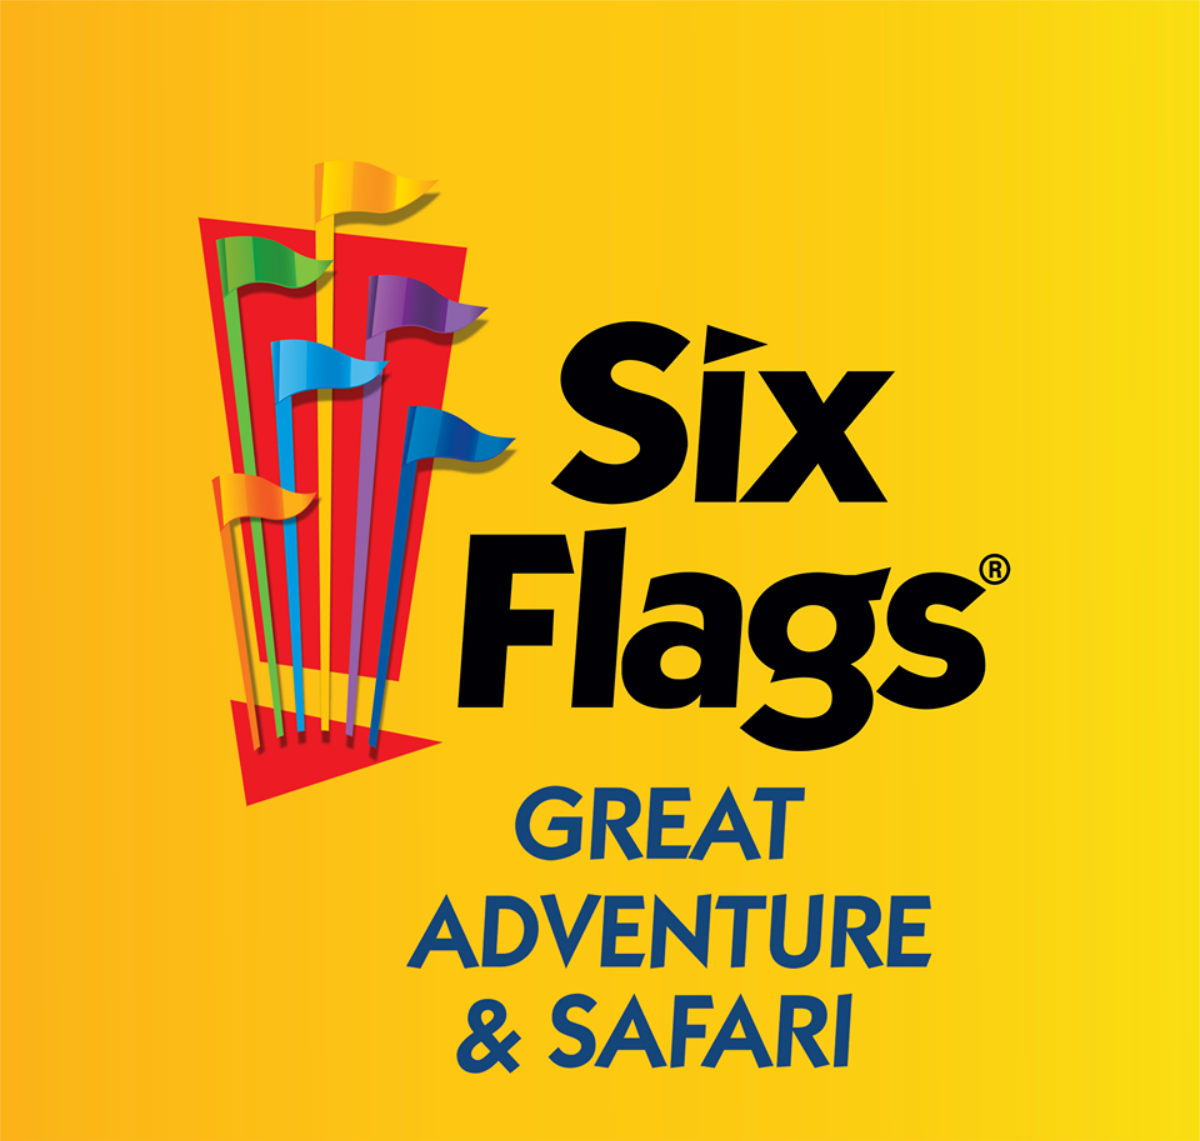 Six Flags Great Adventure Nj Ticket Savings  A Promo Discount Tool Parking Meal 3